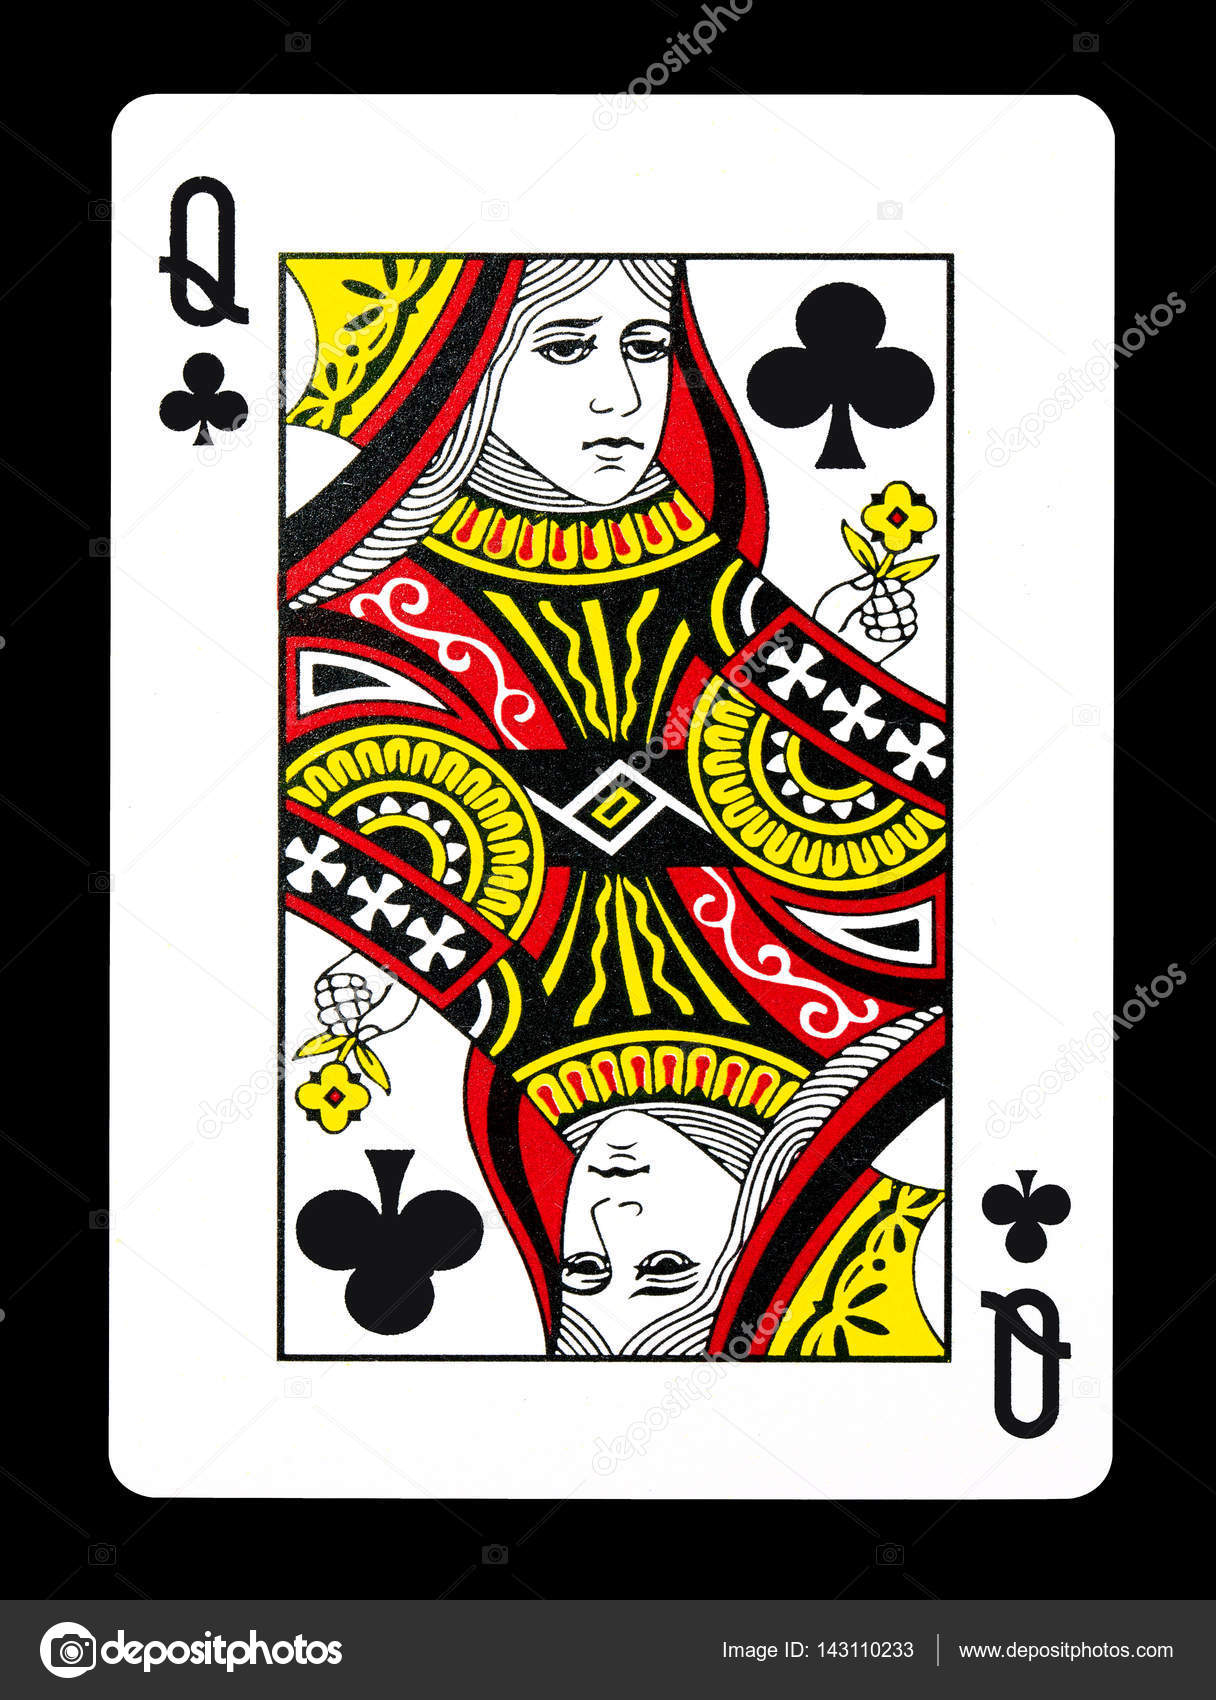 Queen of Clubs - Bing images